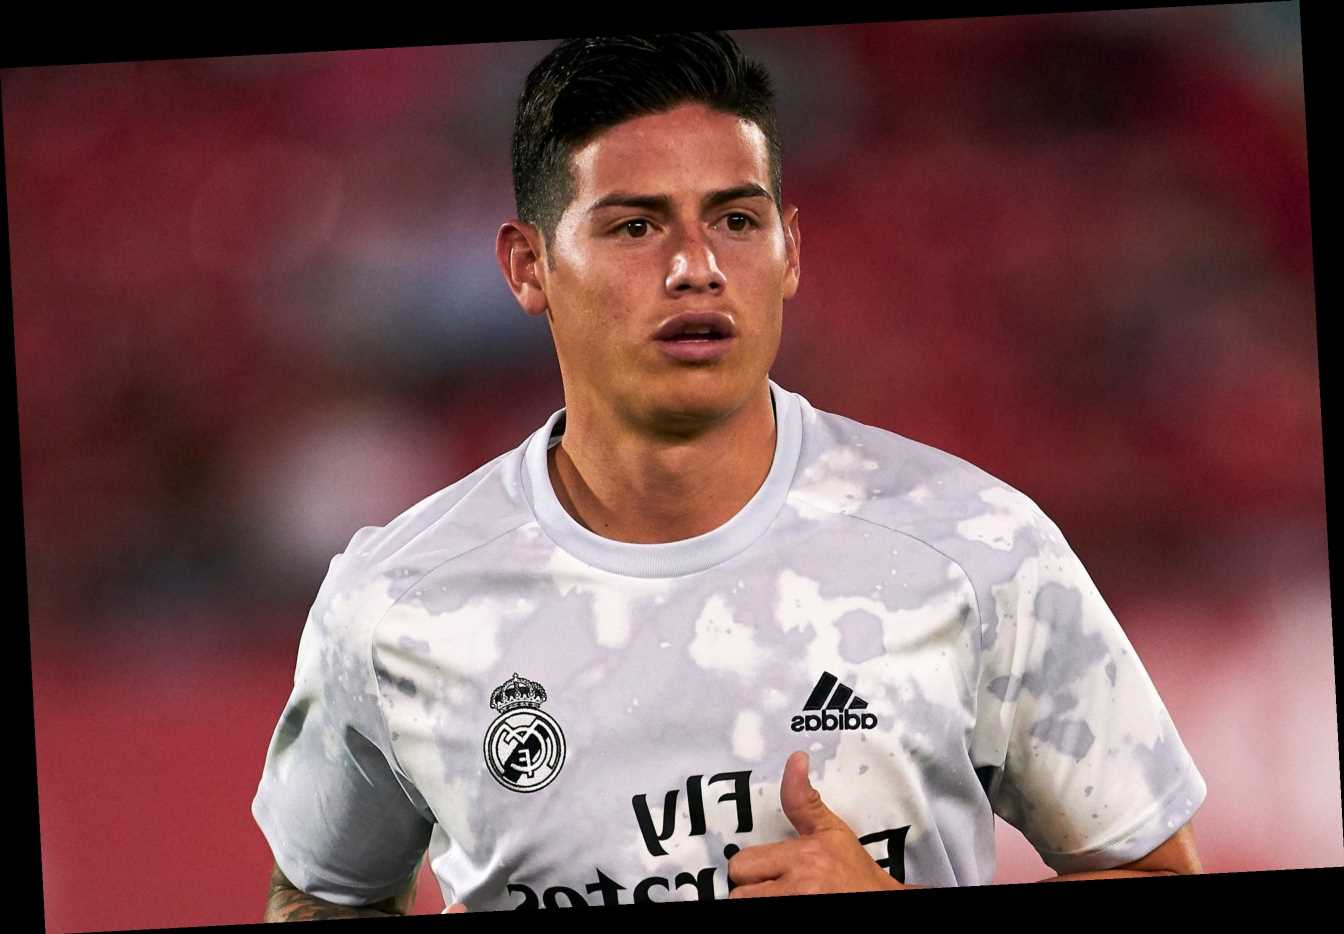 Arsenal transfer bid for James Rodriguez hots up as Gunners 'show most interest' in Colombian forward